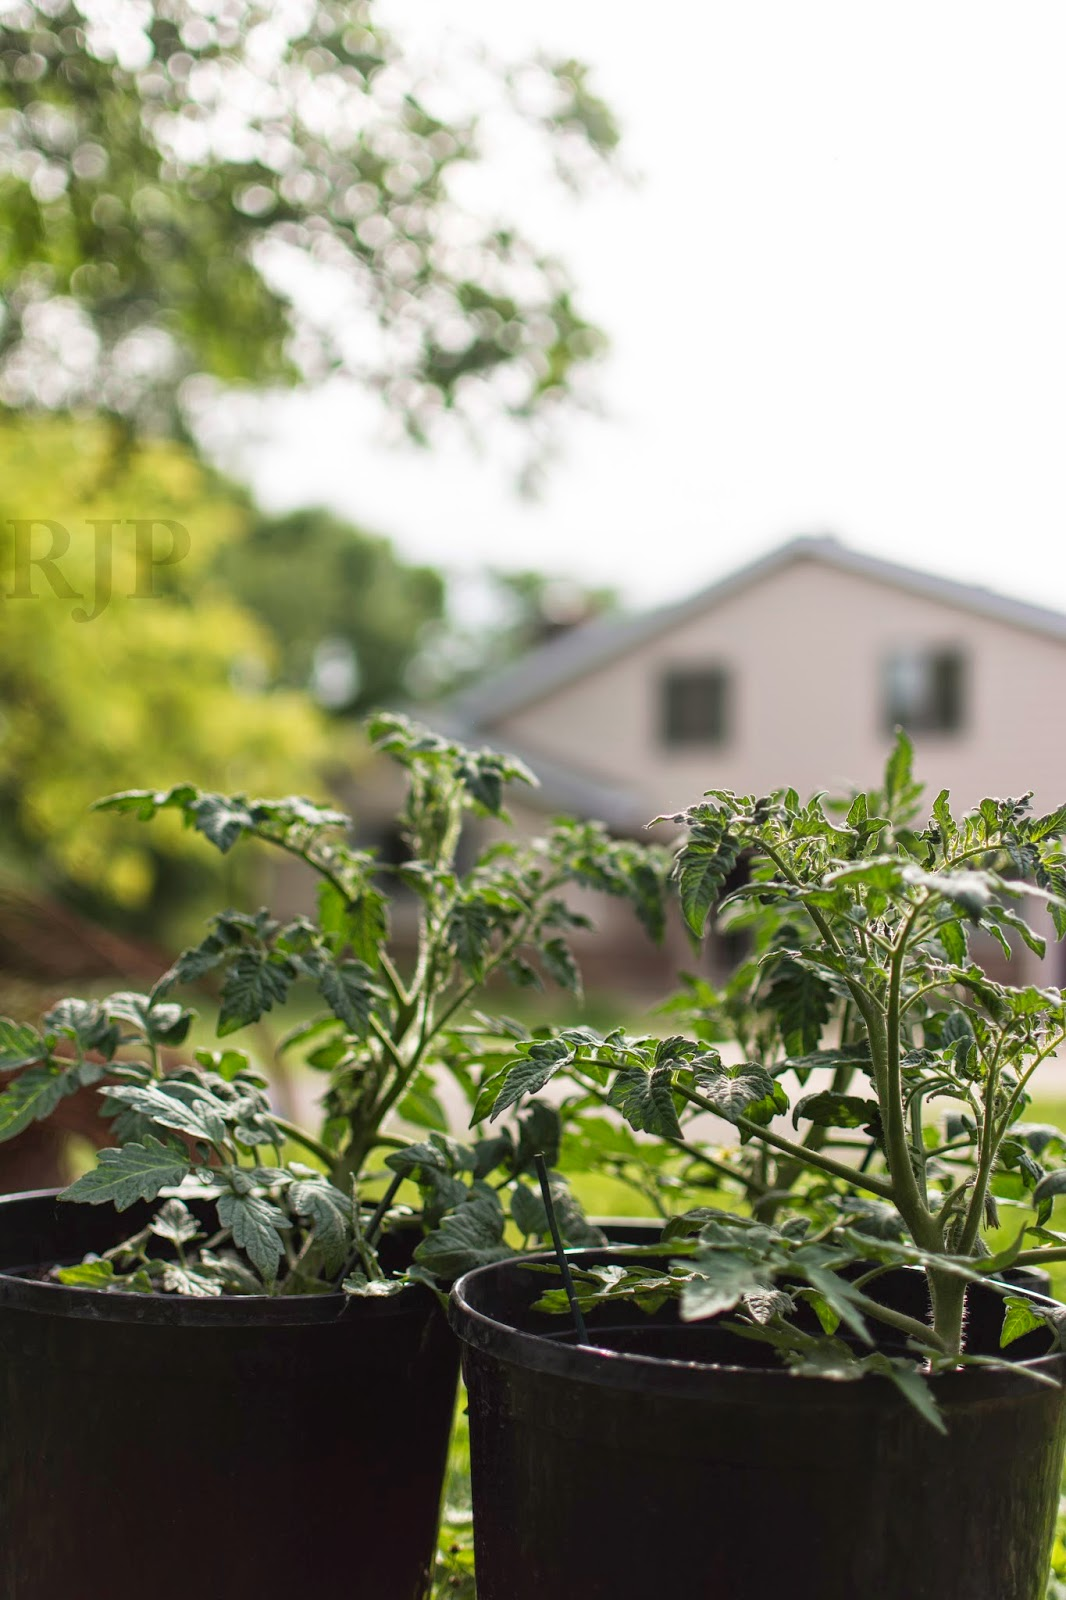 Patio Tomatoes: These tomatoes can grow in the pot all season. Photo: Reed Petersen